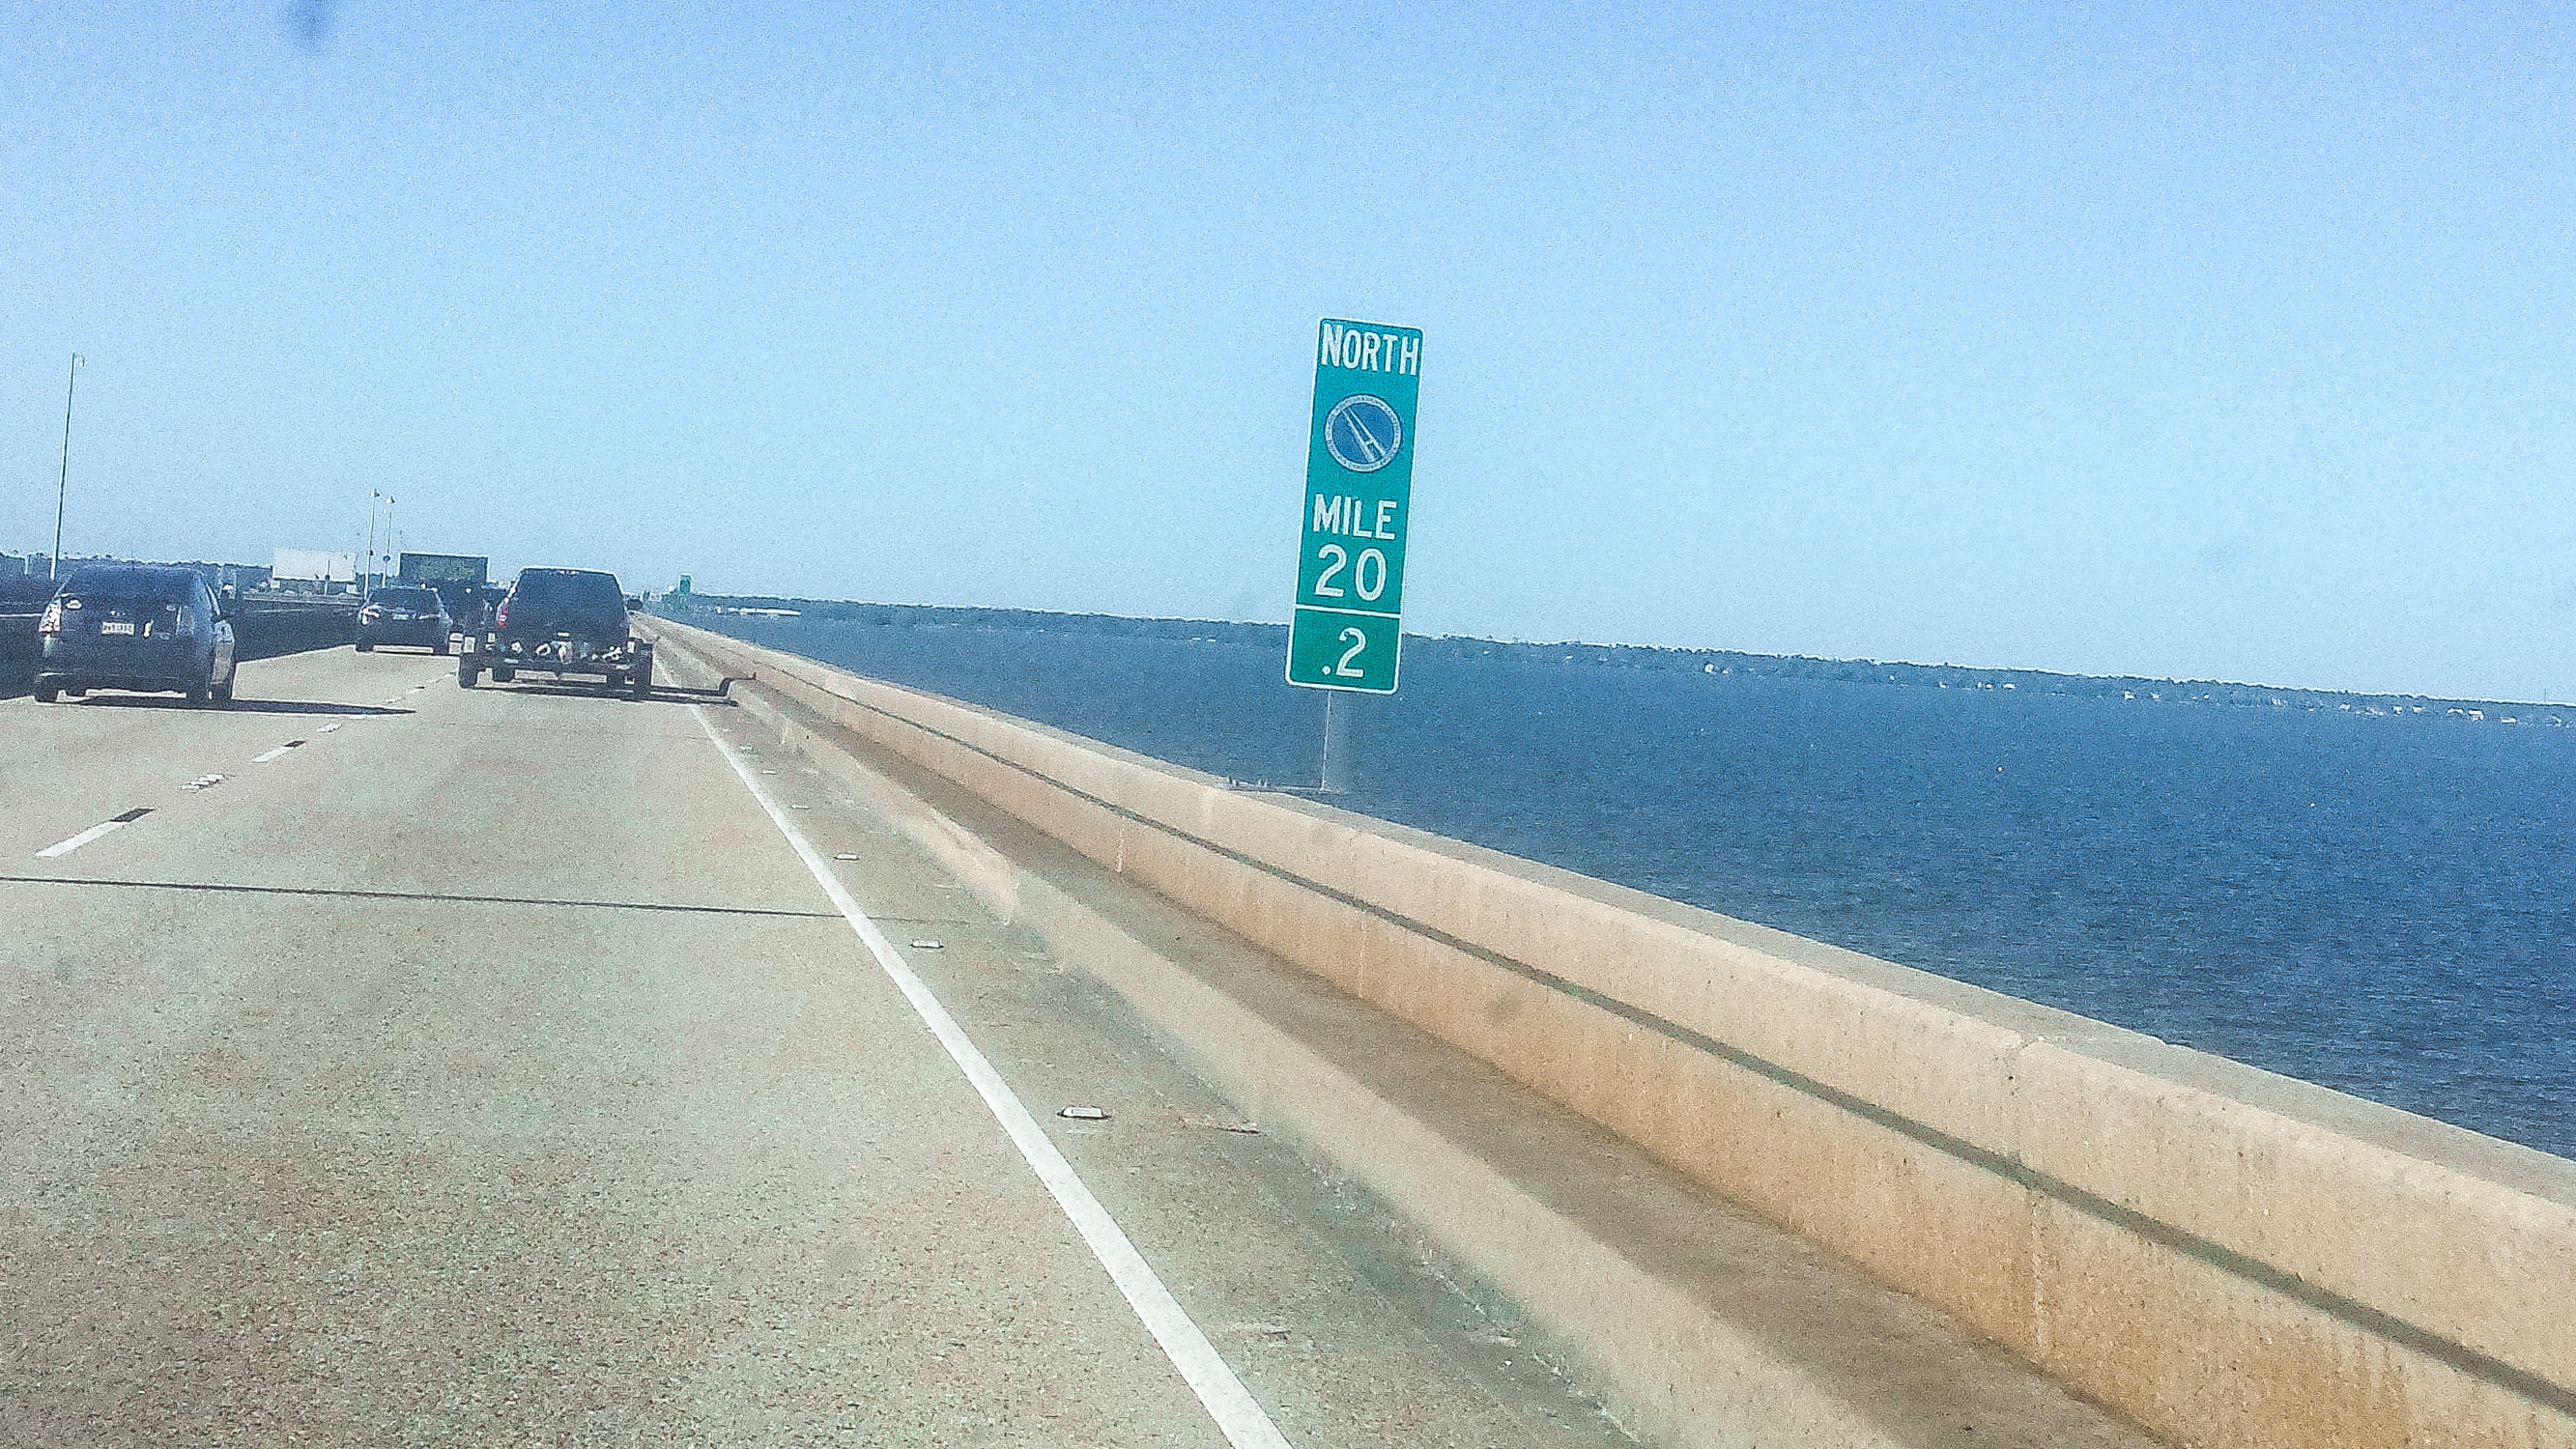 Fins to Spurs, Longest Bridge, #GetYourFinsOn, Dive and Drive Christine and Adam, road trip